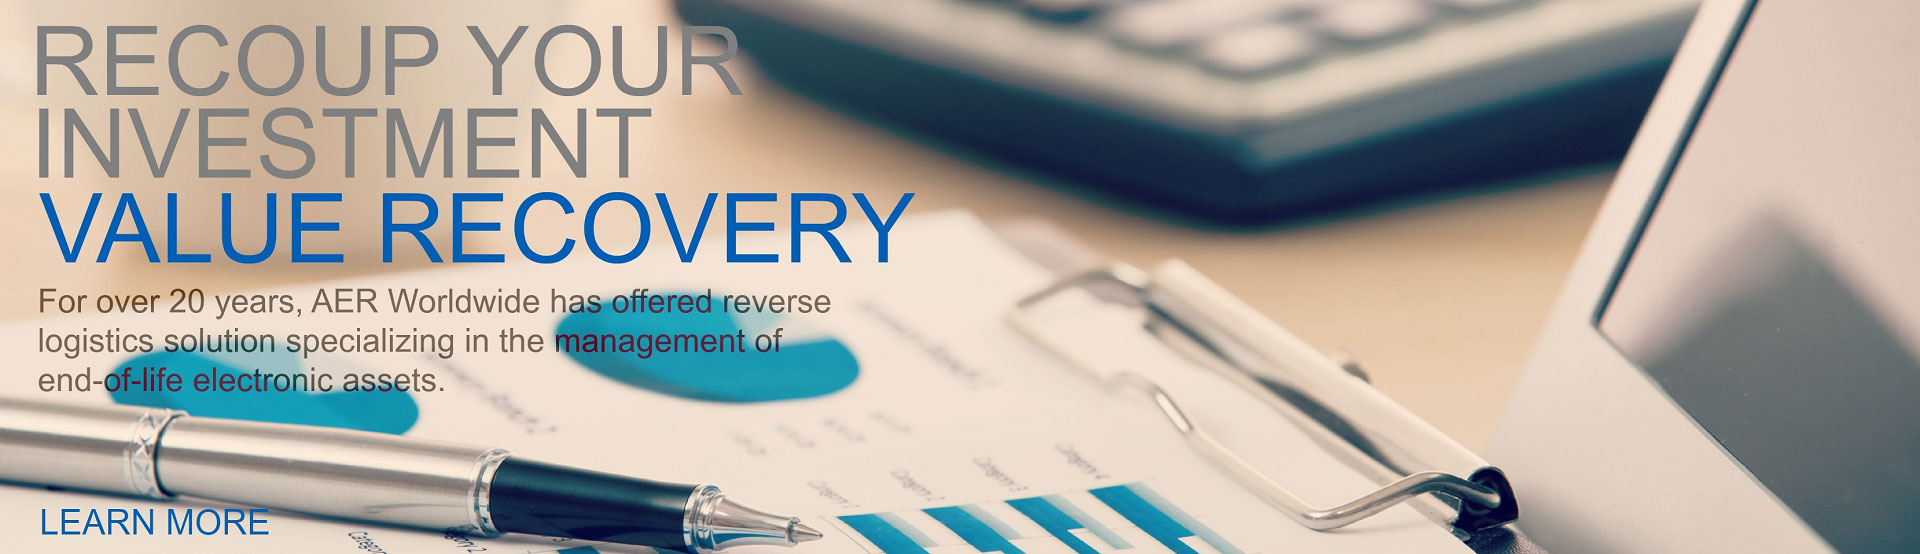 value-recovery-cr2